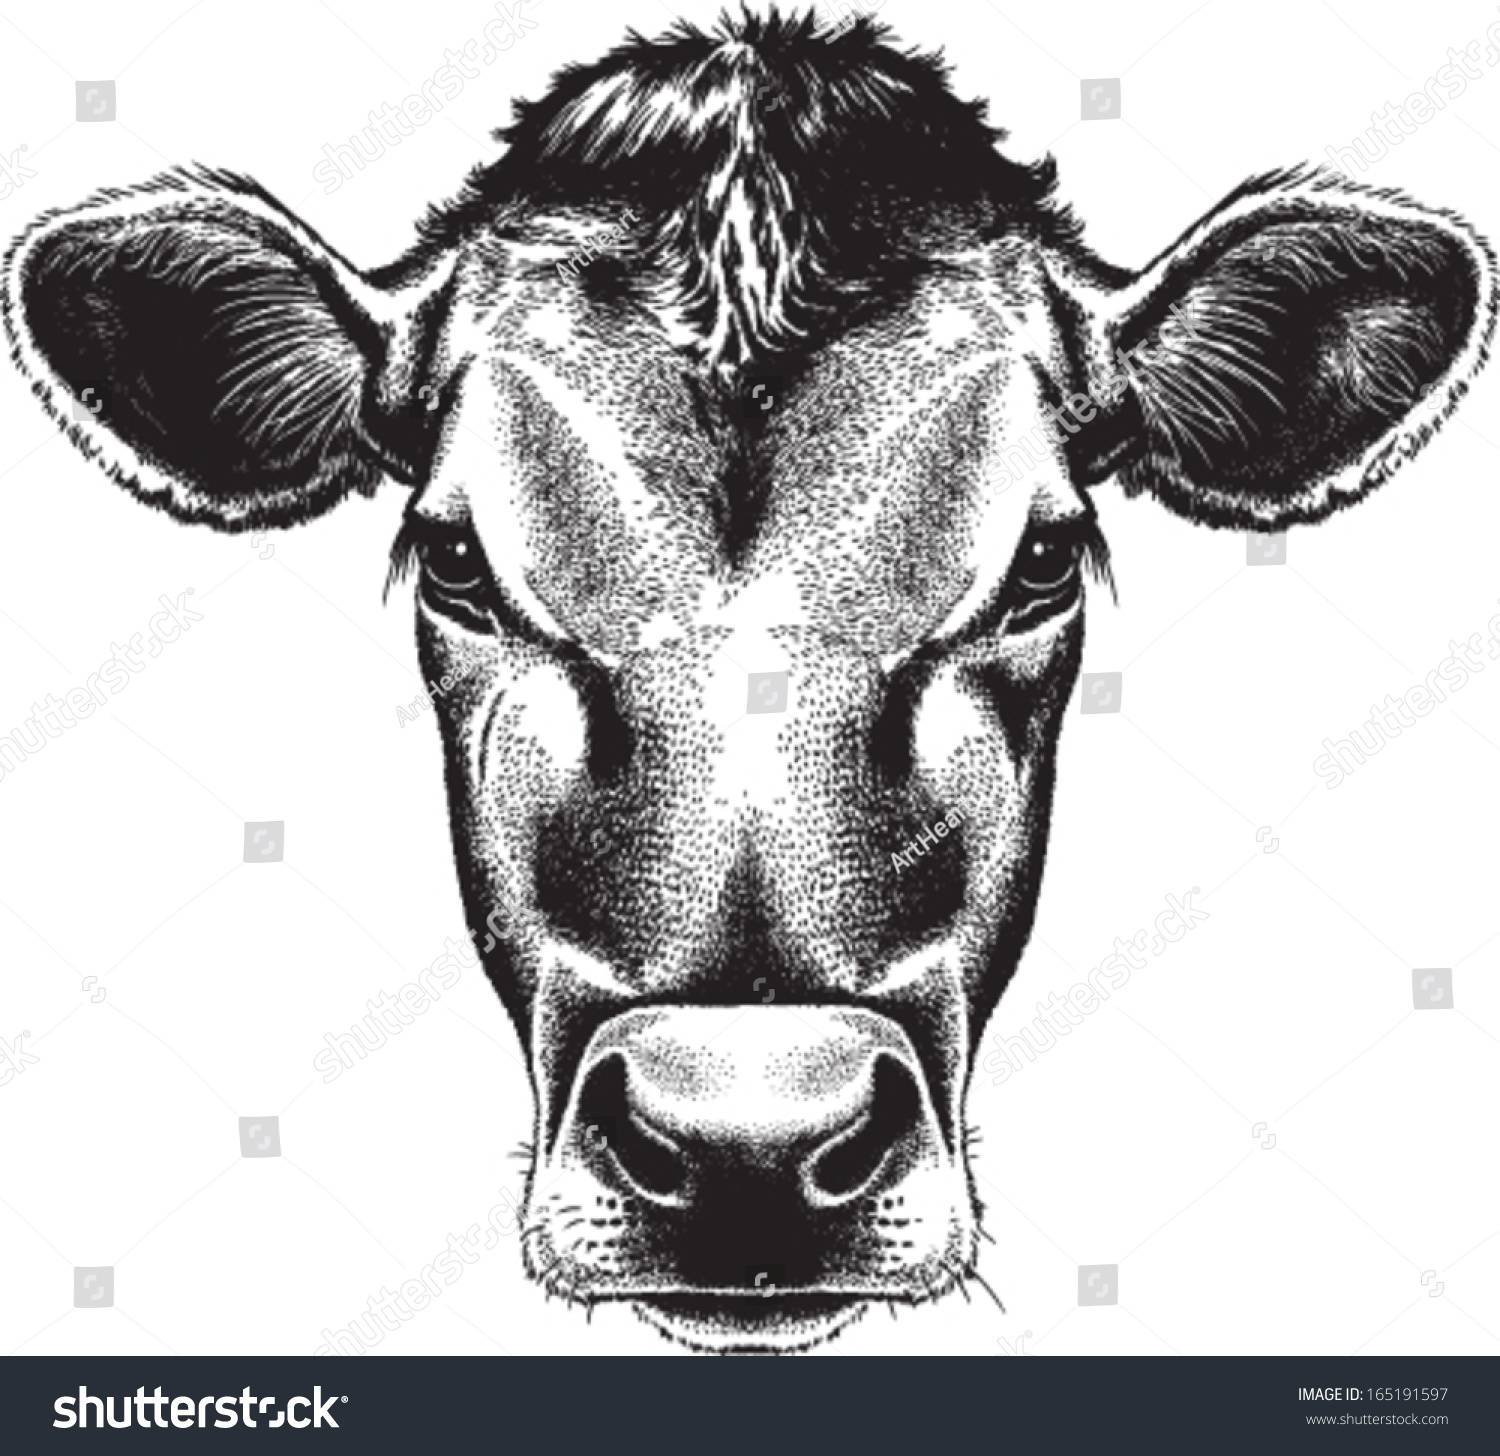 Line Drawing Cow Face : Online image photo editor shutterstock